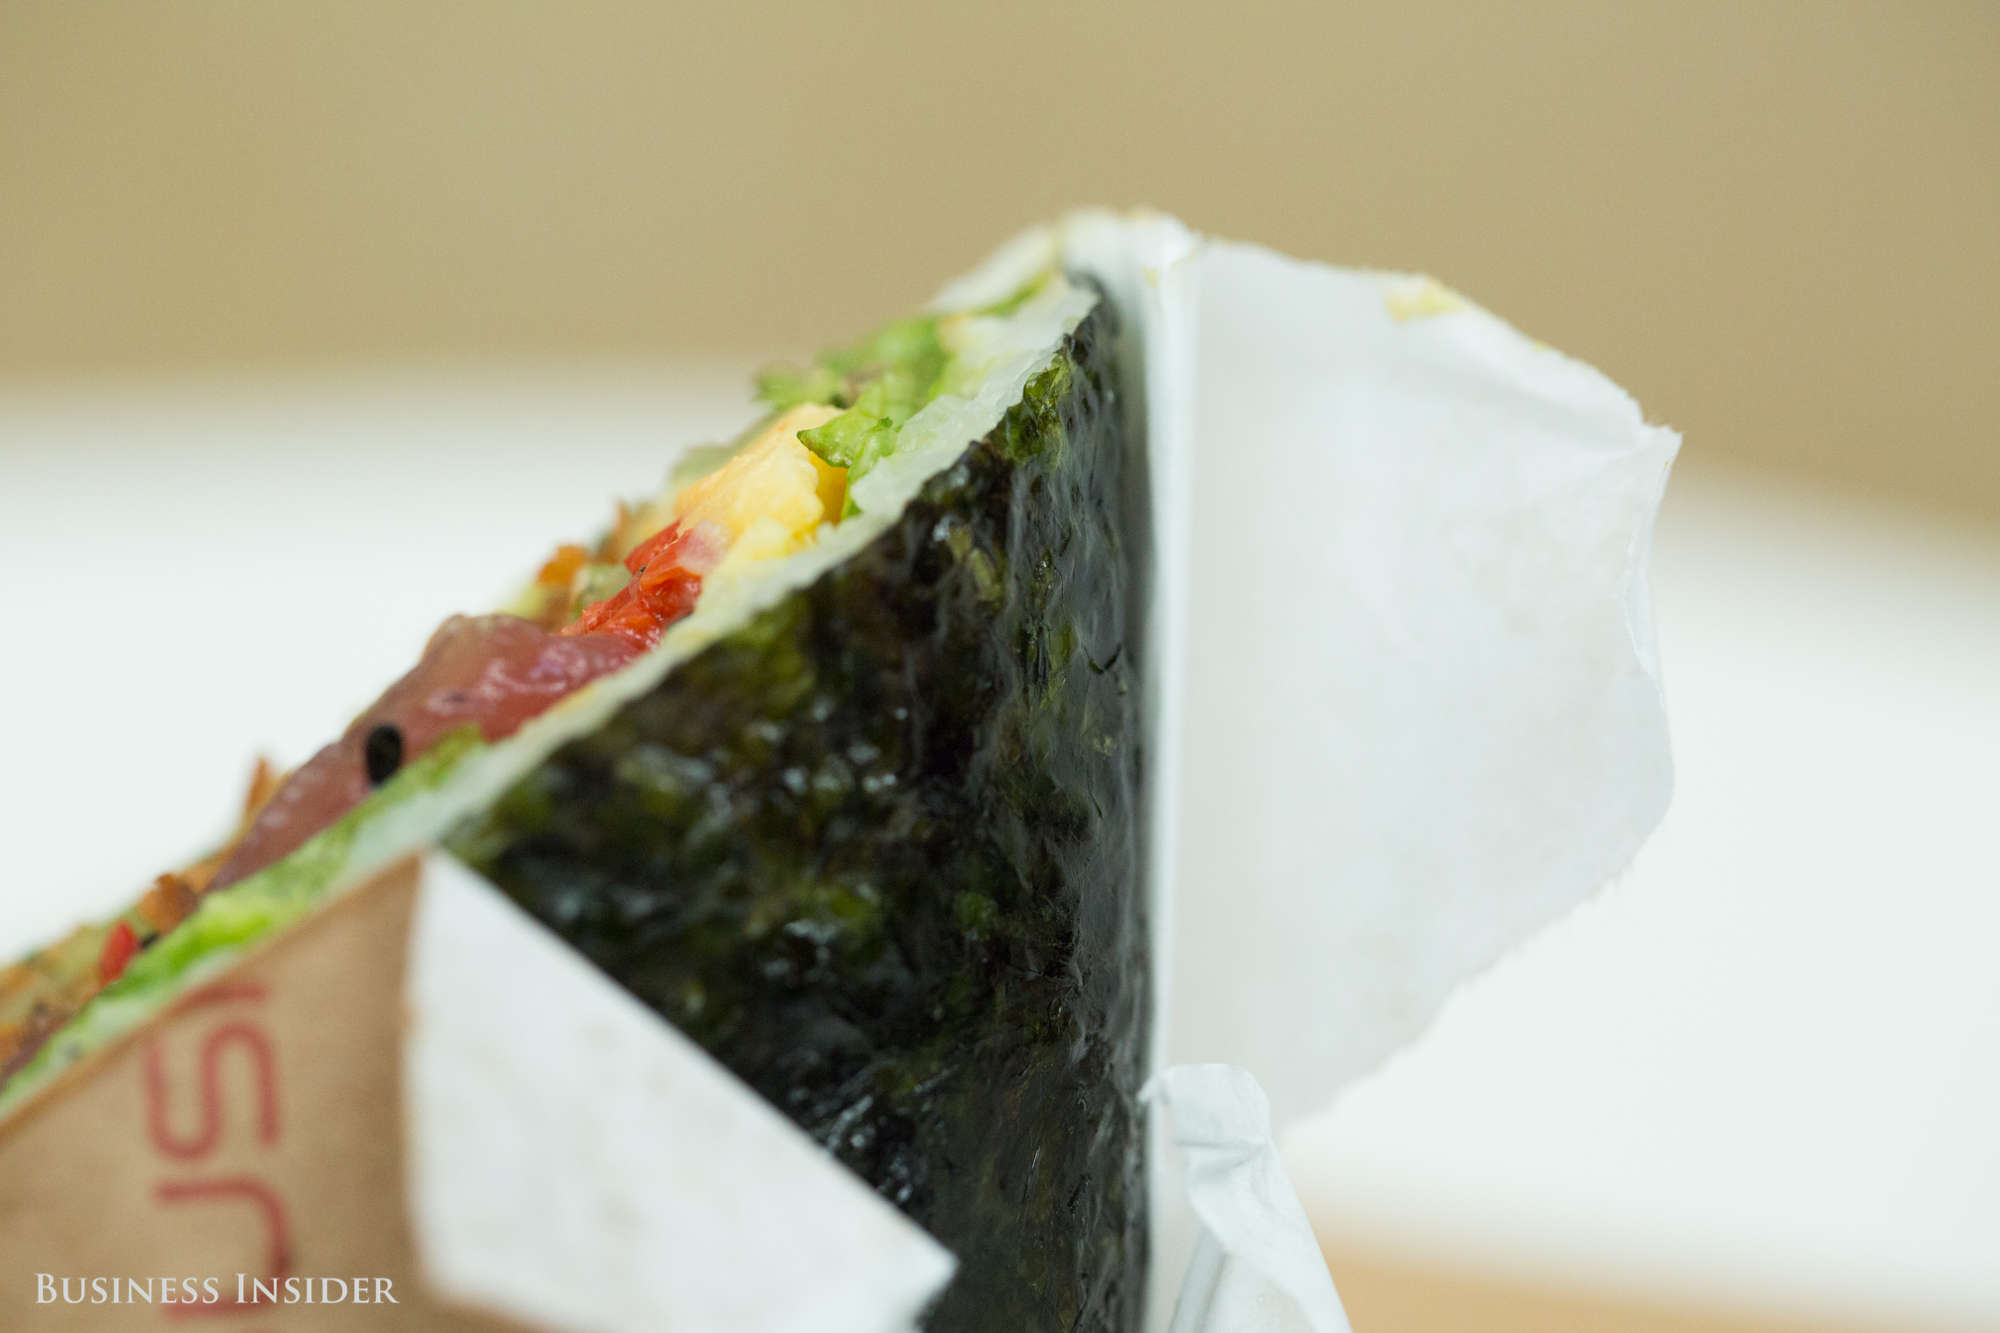 Seaweed Paper And White Rice Held Together The Tightly Packed